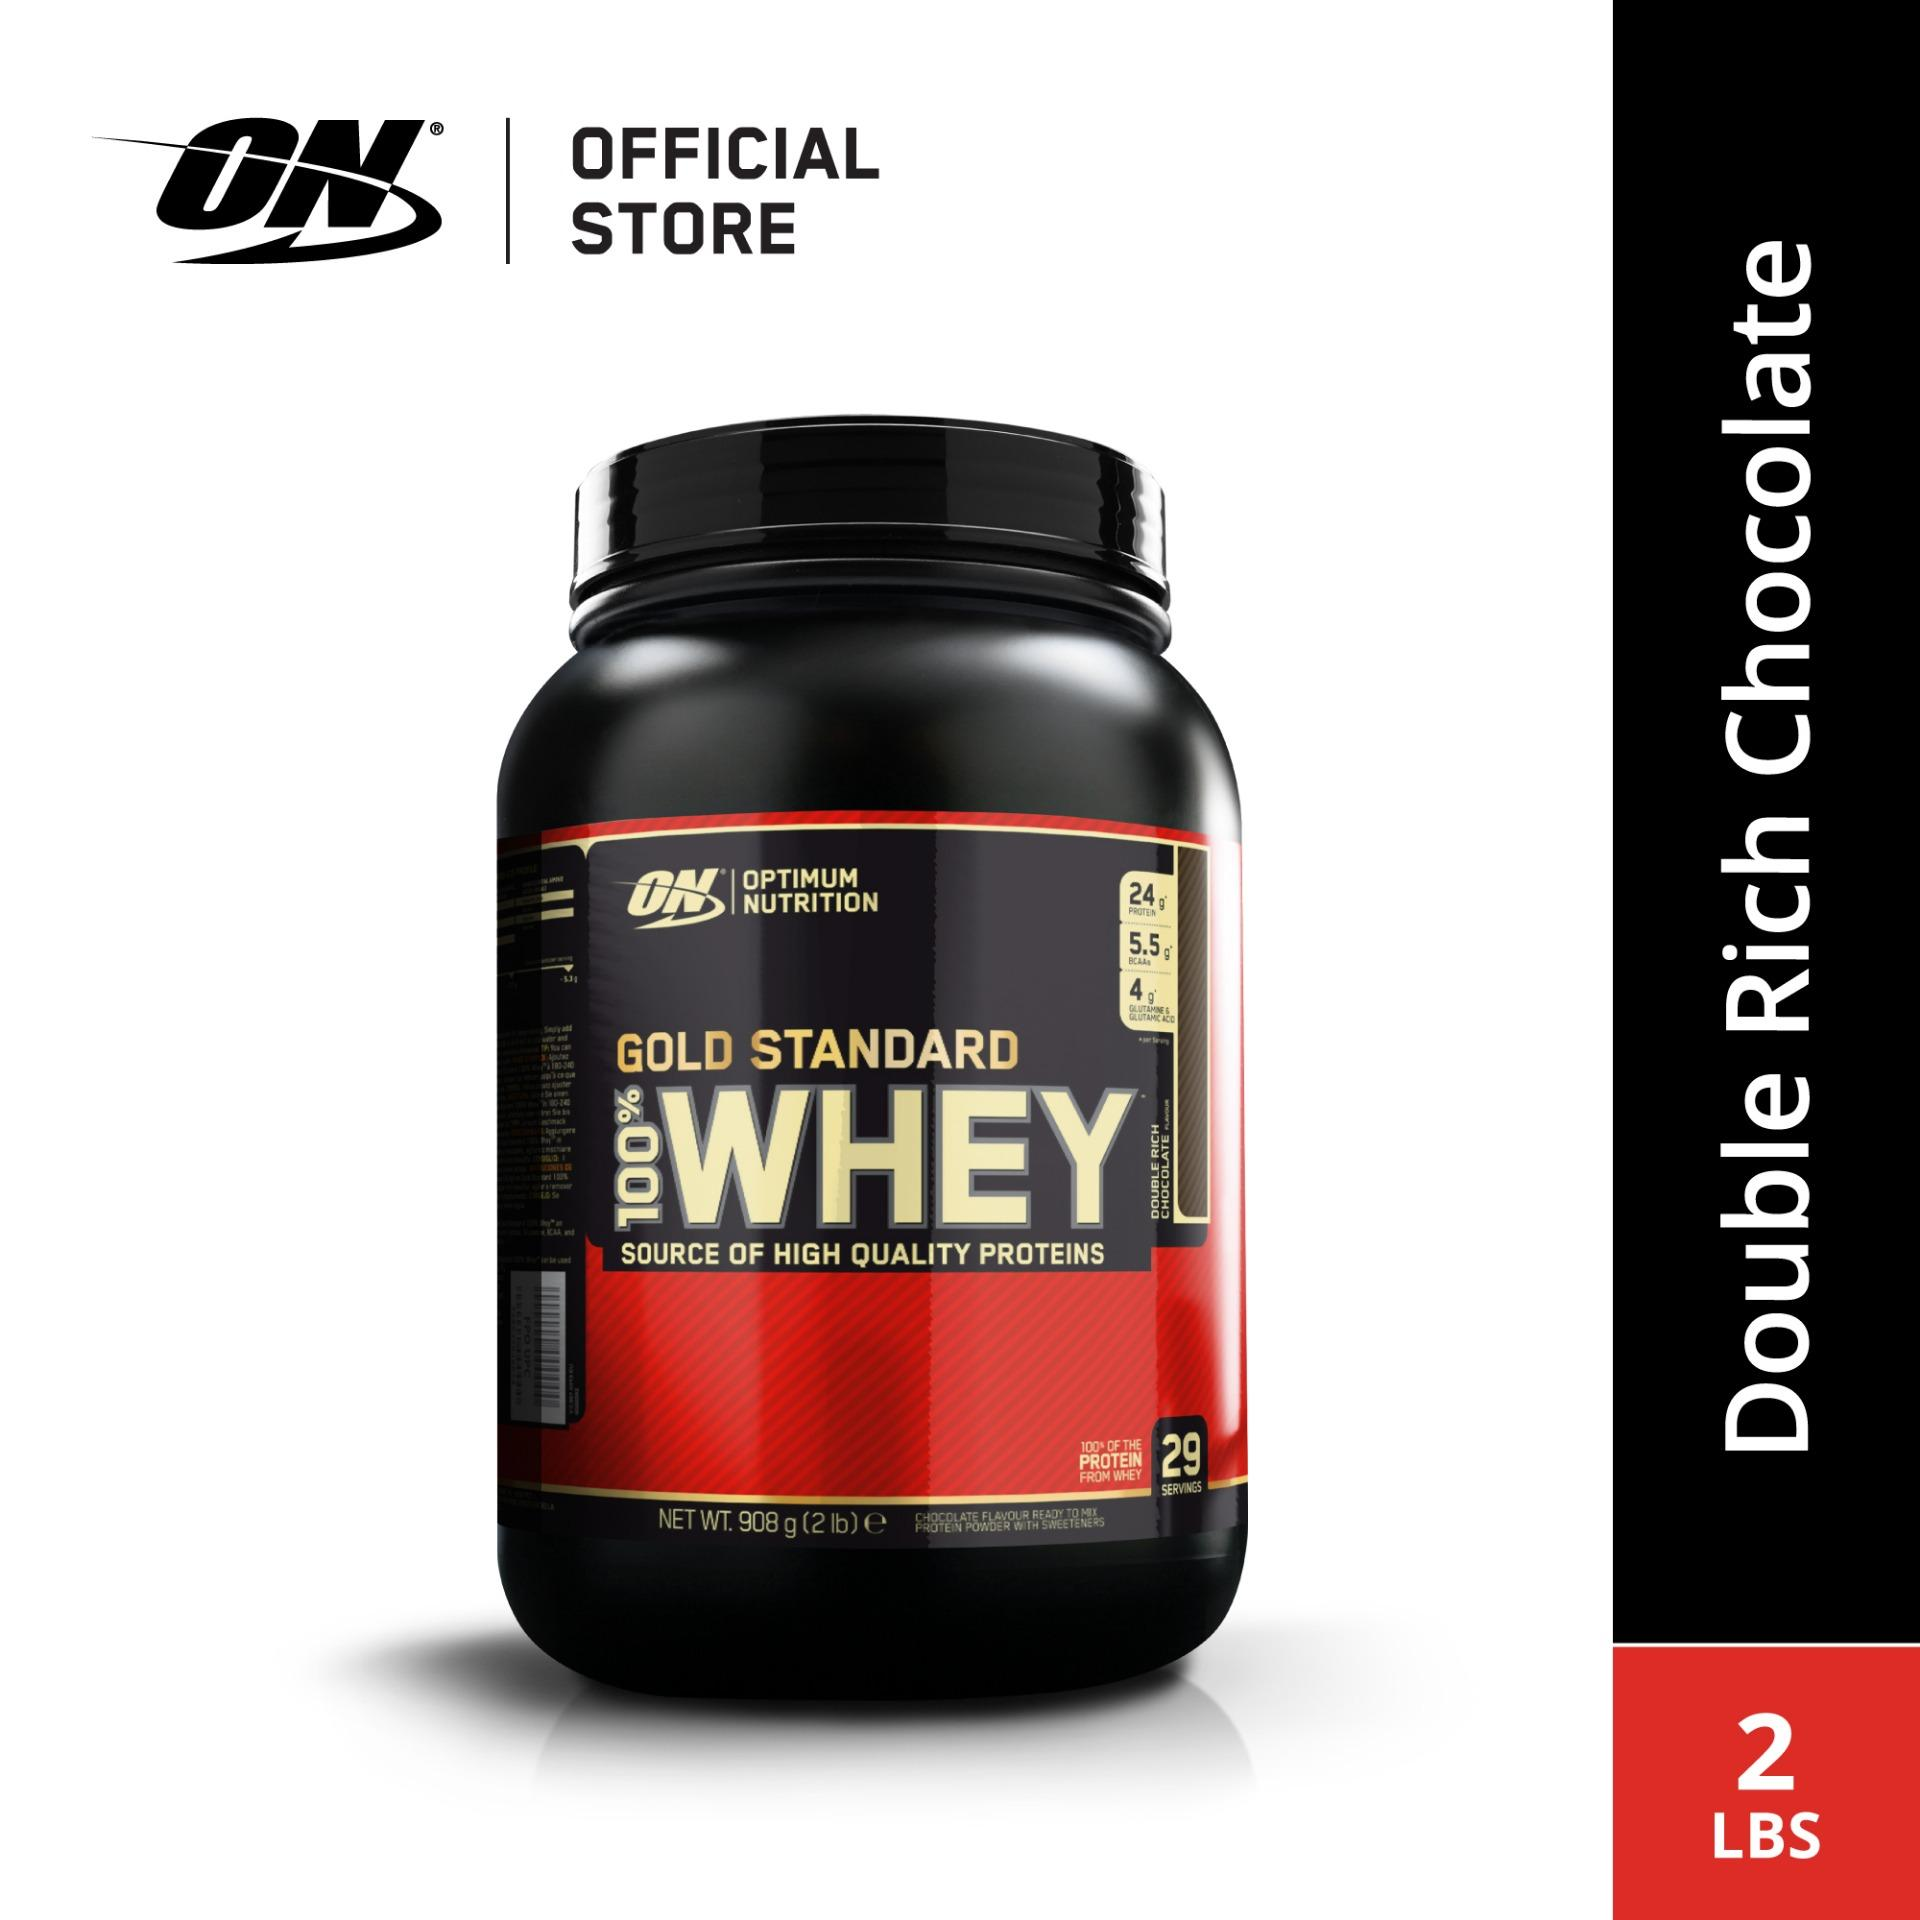 9c8fc0bdd Optimum Nutrition Gold Standard Whey Protein 2 lbs - Double Rich Chocolate